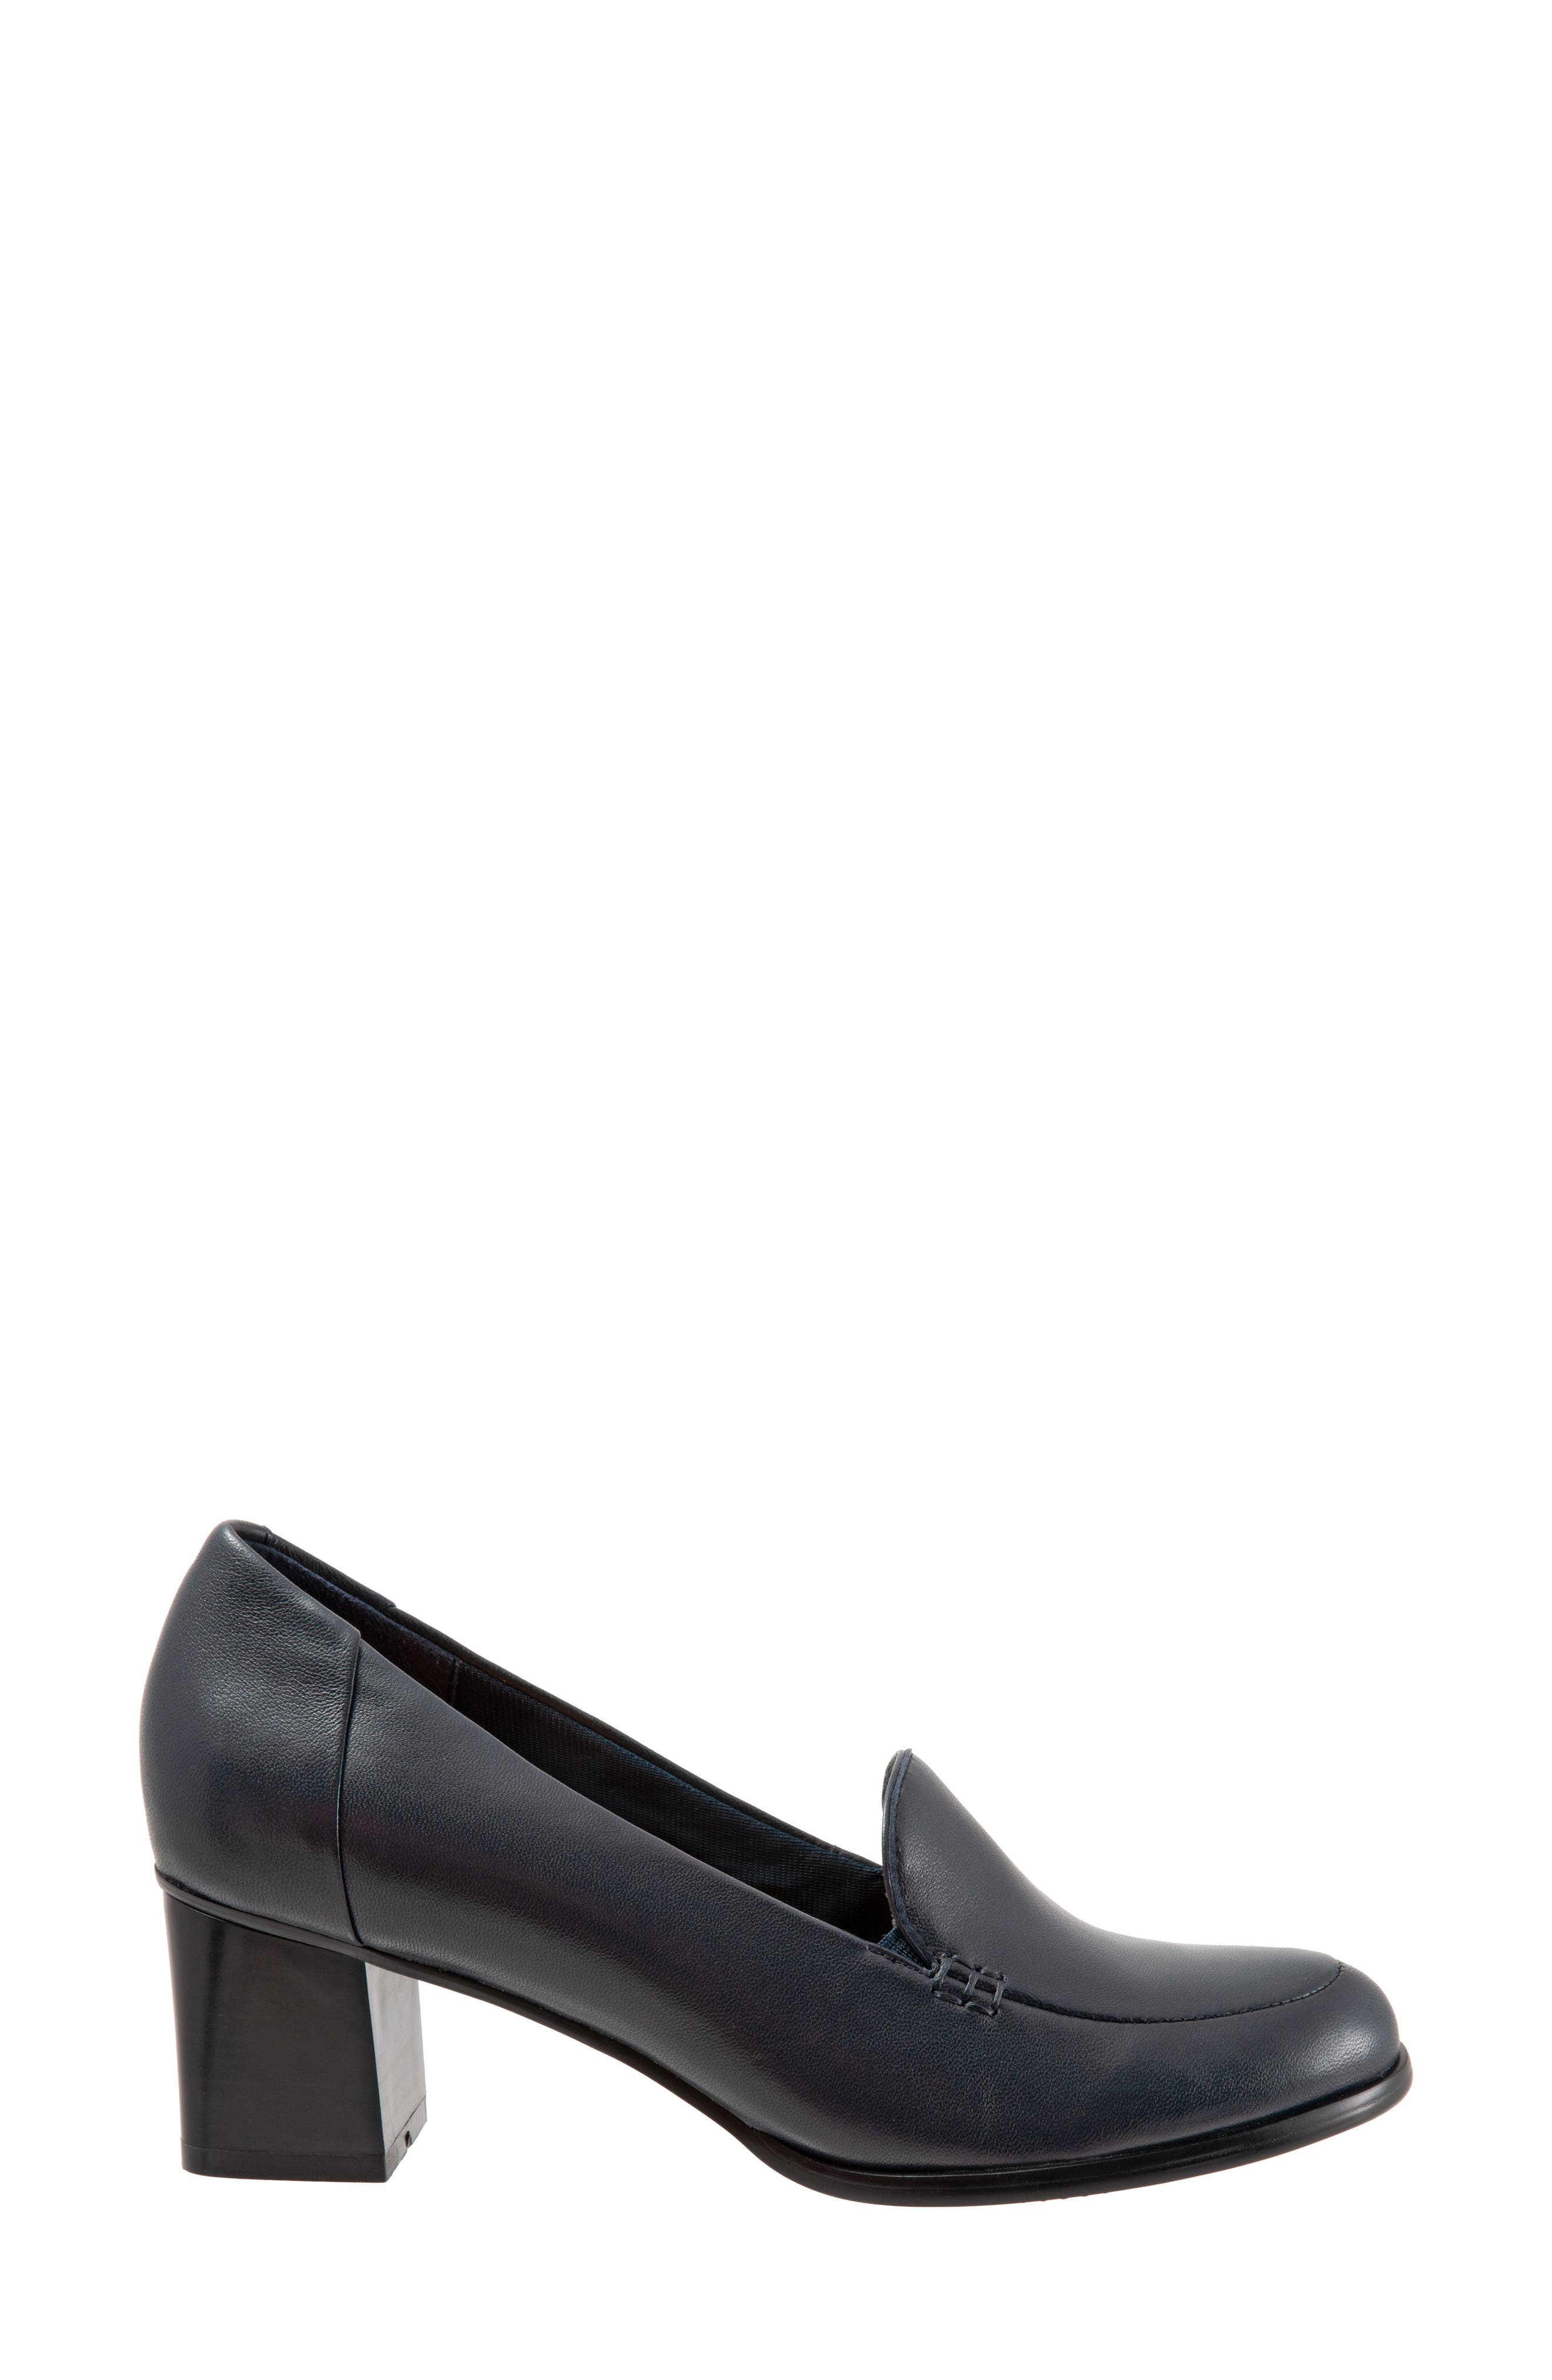 TROTTERS,                             Quincy Loafer Pump,                             Alternate thumbnail 3, color,                             NAVY LEATHER